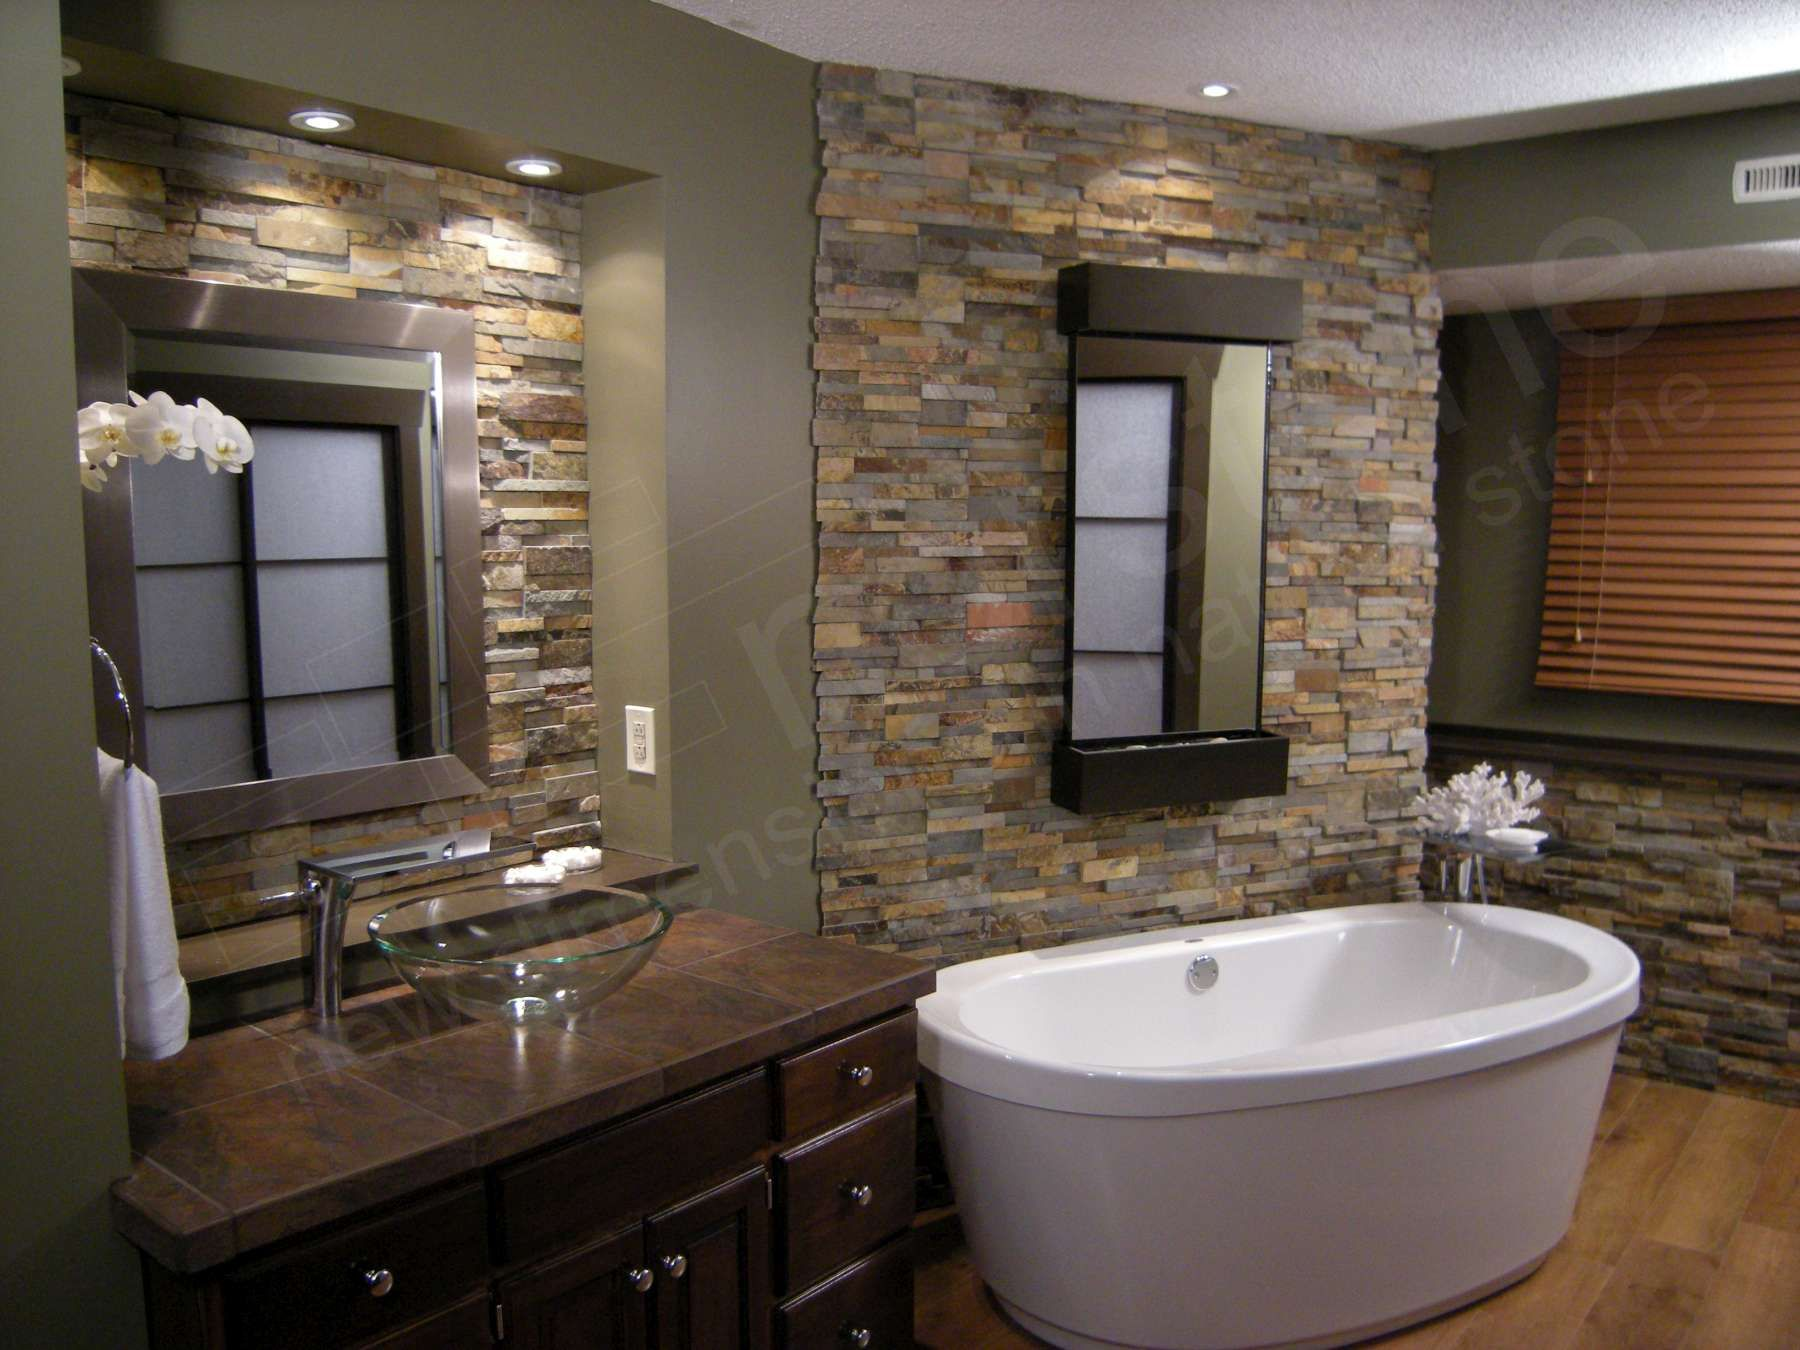 Ochre Blend Remarkably Simple And Costeffective Norstone - Cost effective bathroom remodel for bathroom decor ideas